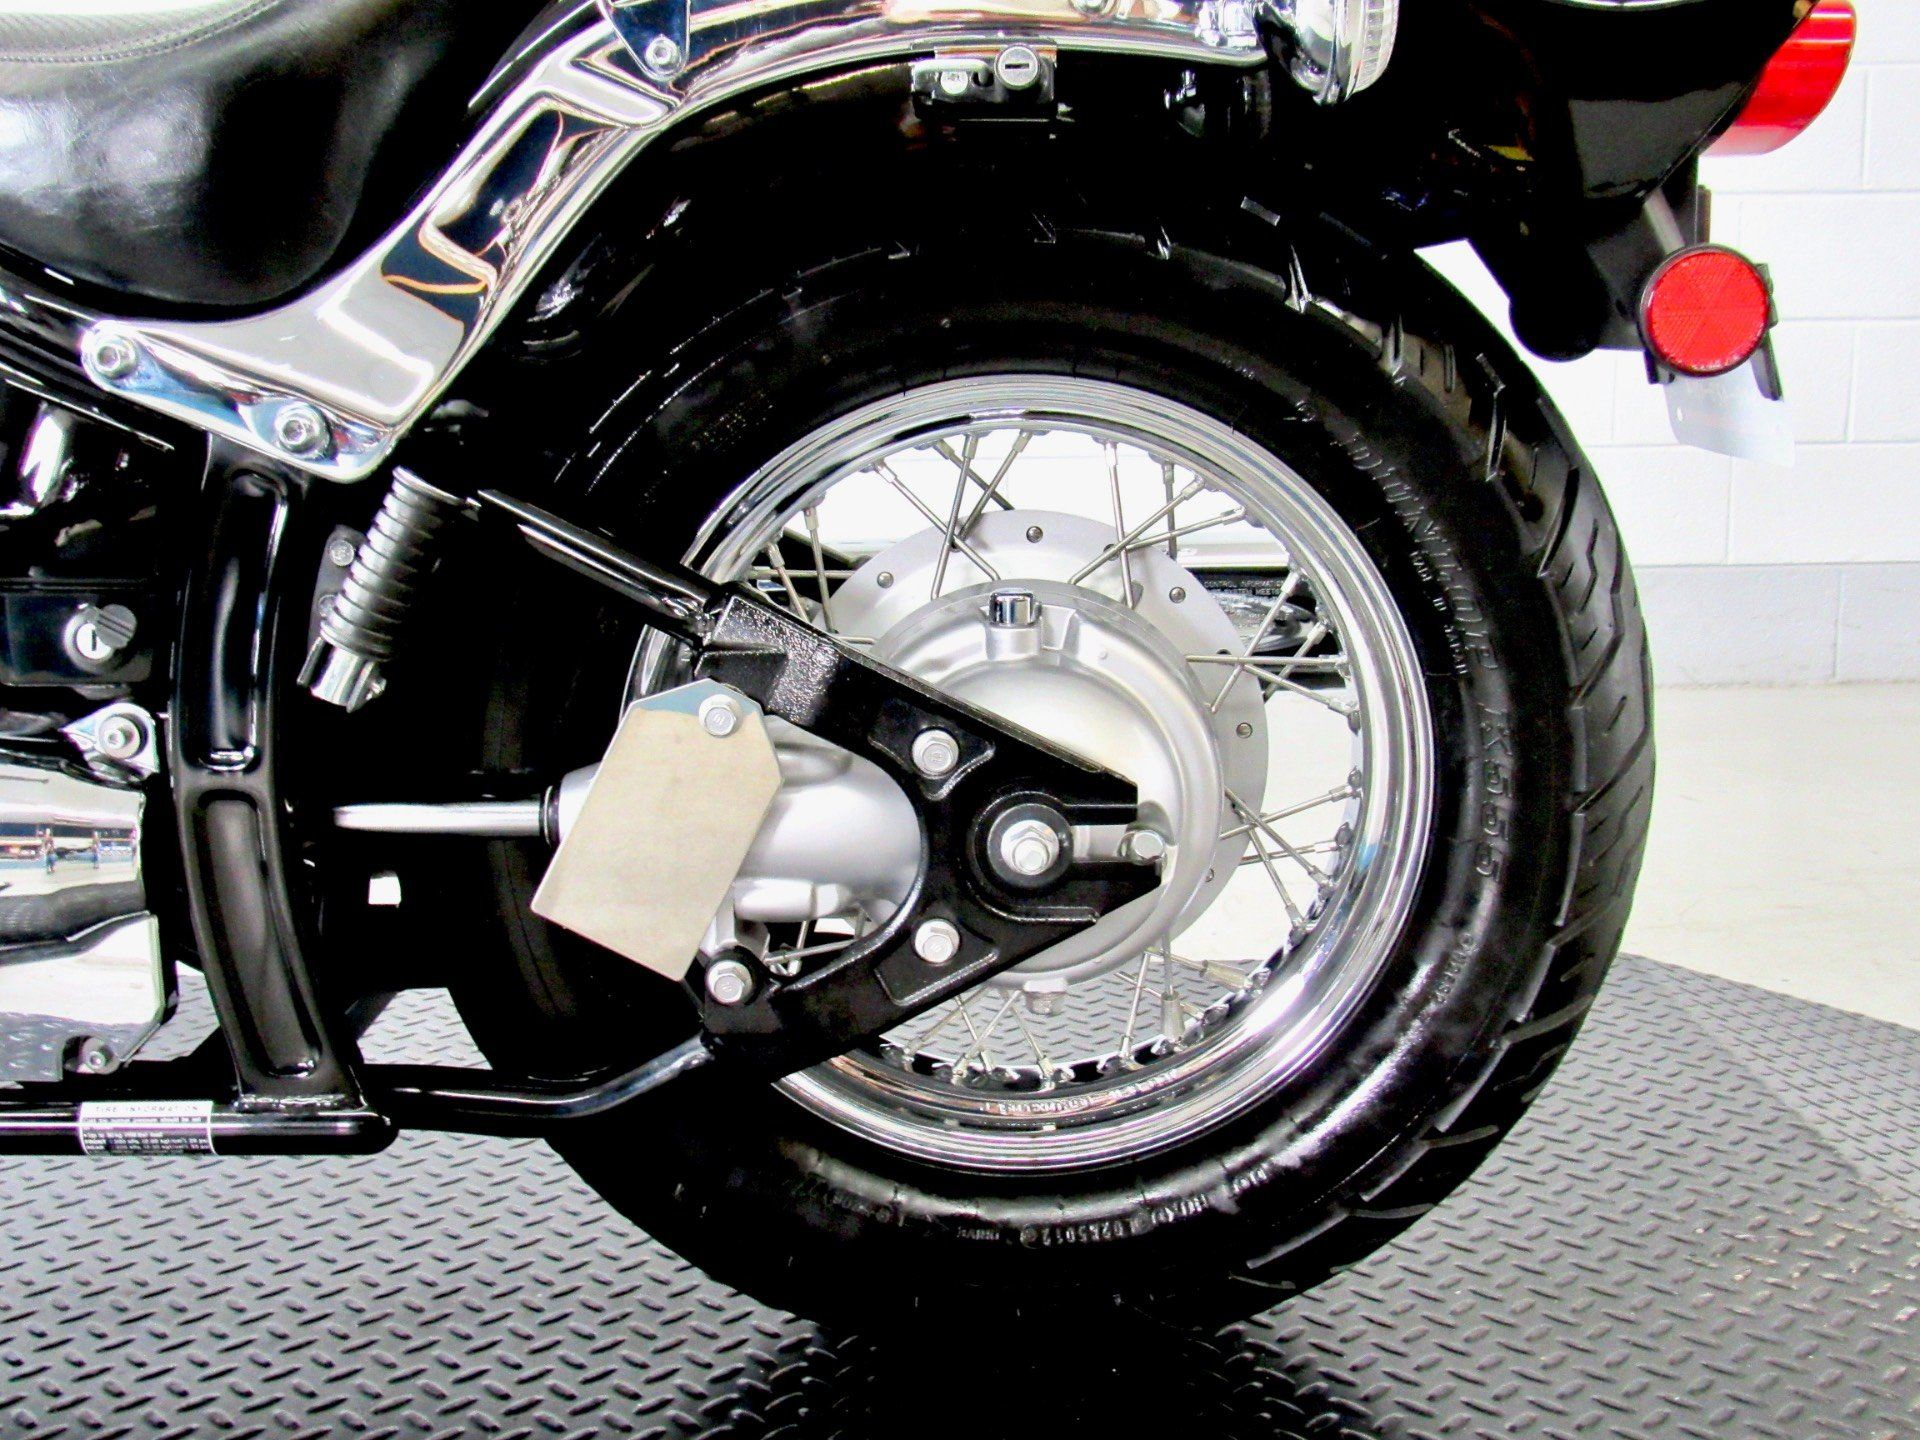 2013 Yamaha V Star 650 Custom in Fredericksburg, Virginia - Photo 22